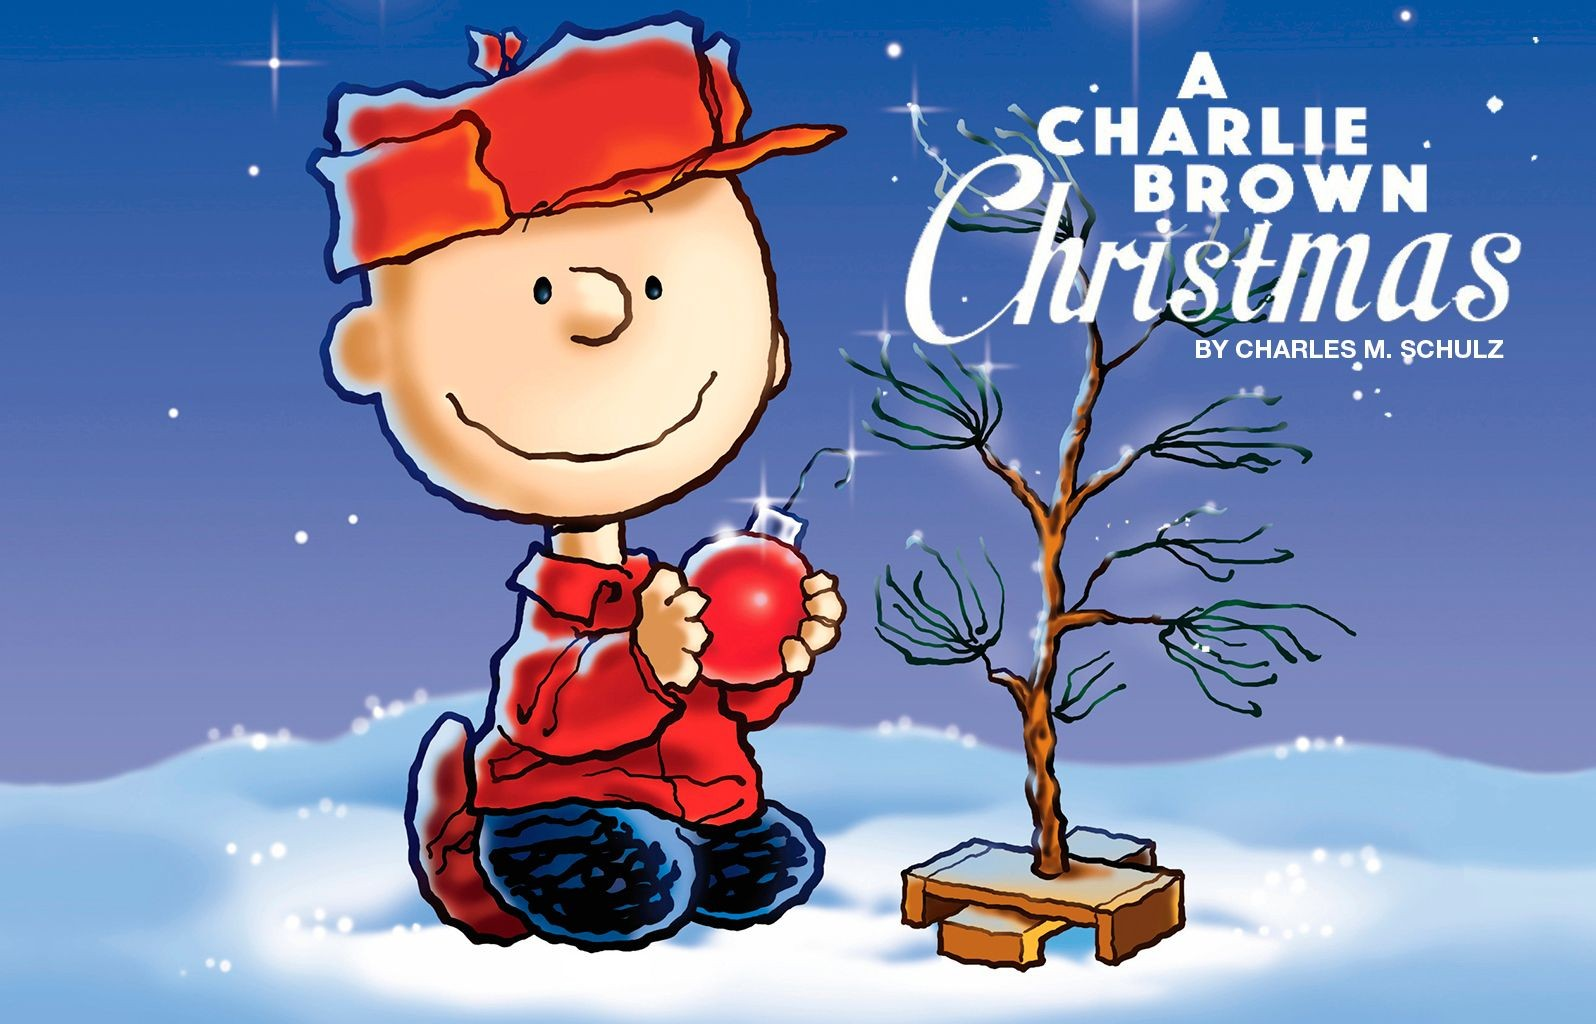 When Is Charlie Brown Christmas On.Good Grief It S Almost Christmas Theatre Savannah News